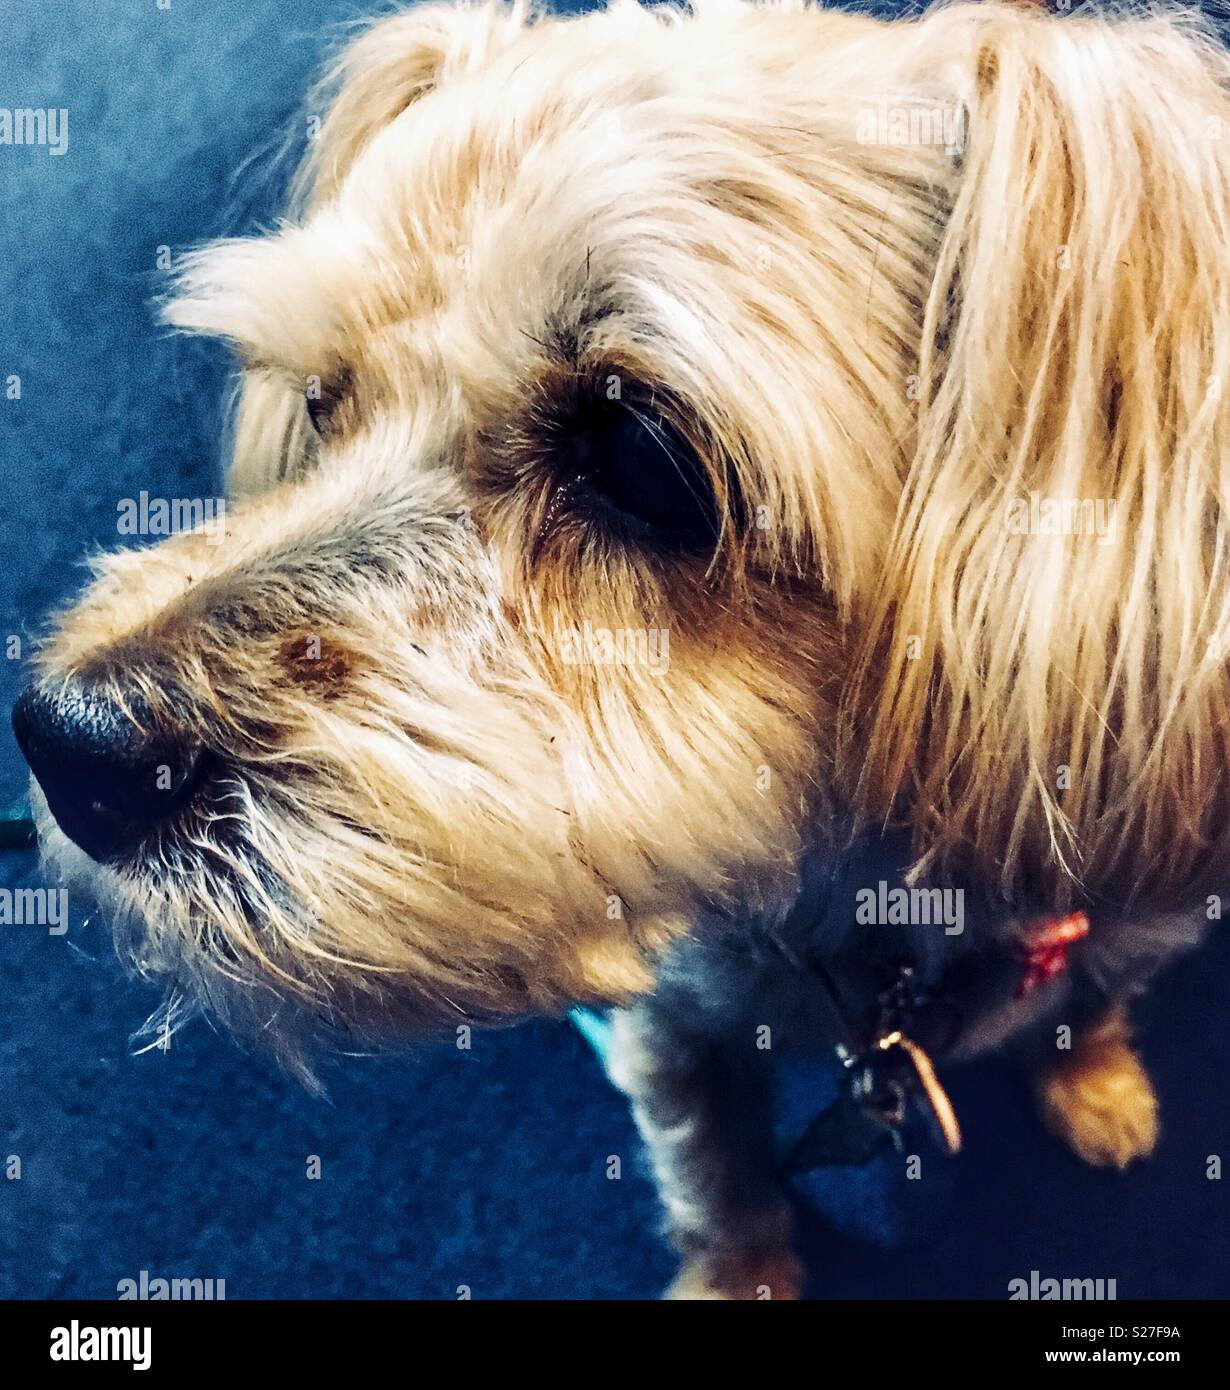 Yorkie mix dog looking to the left - Stock Image